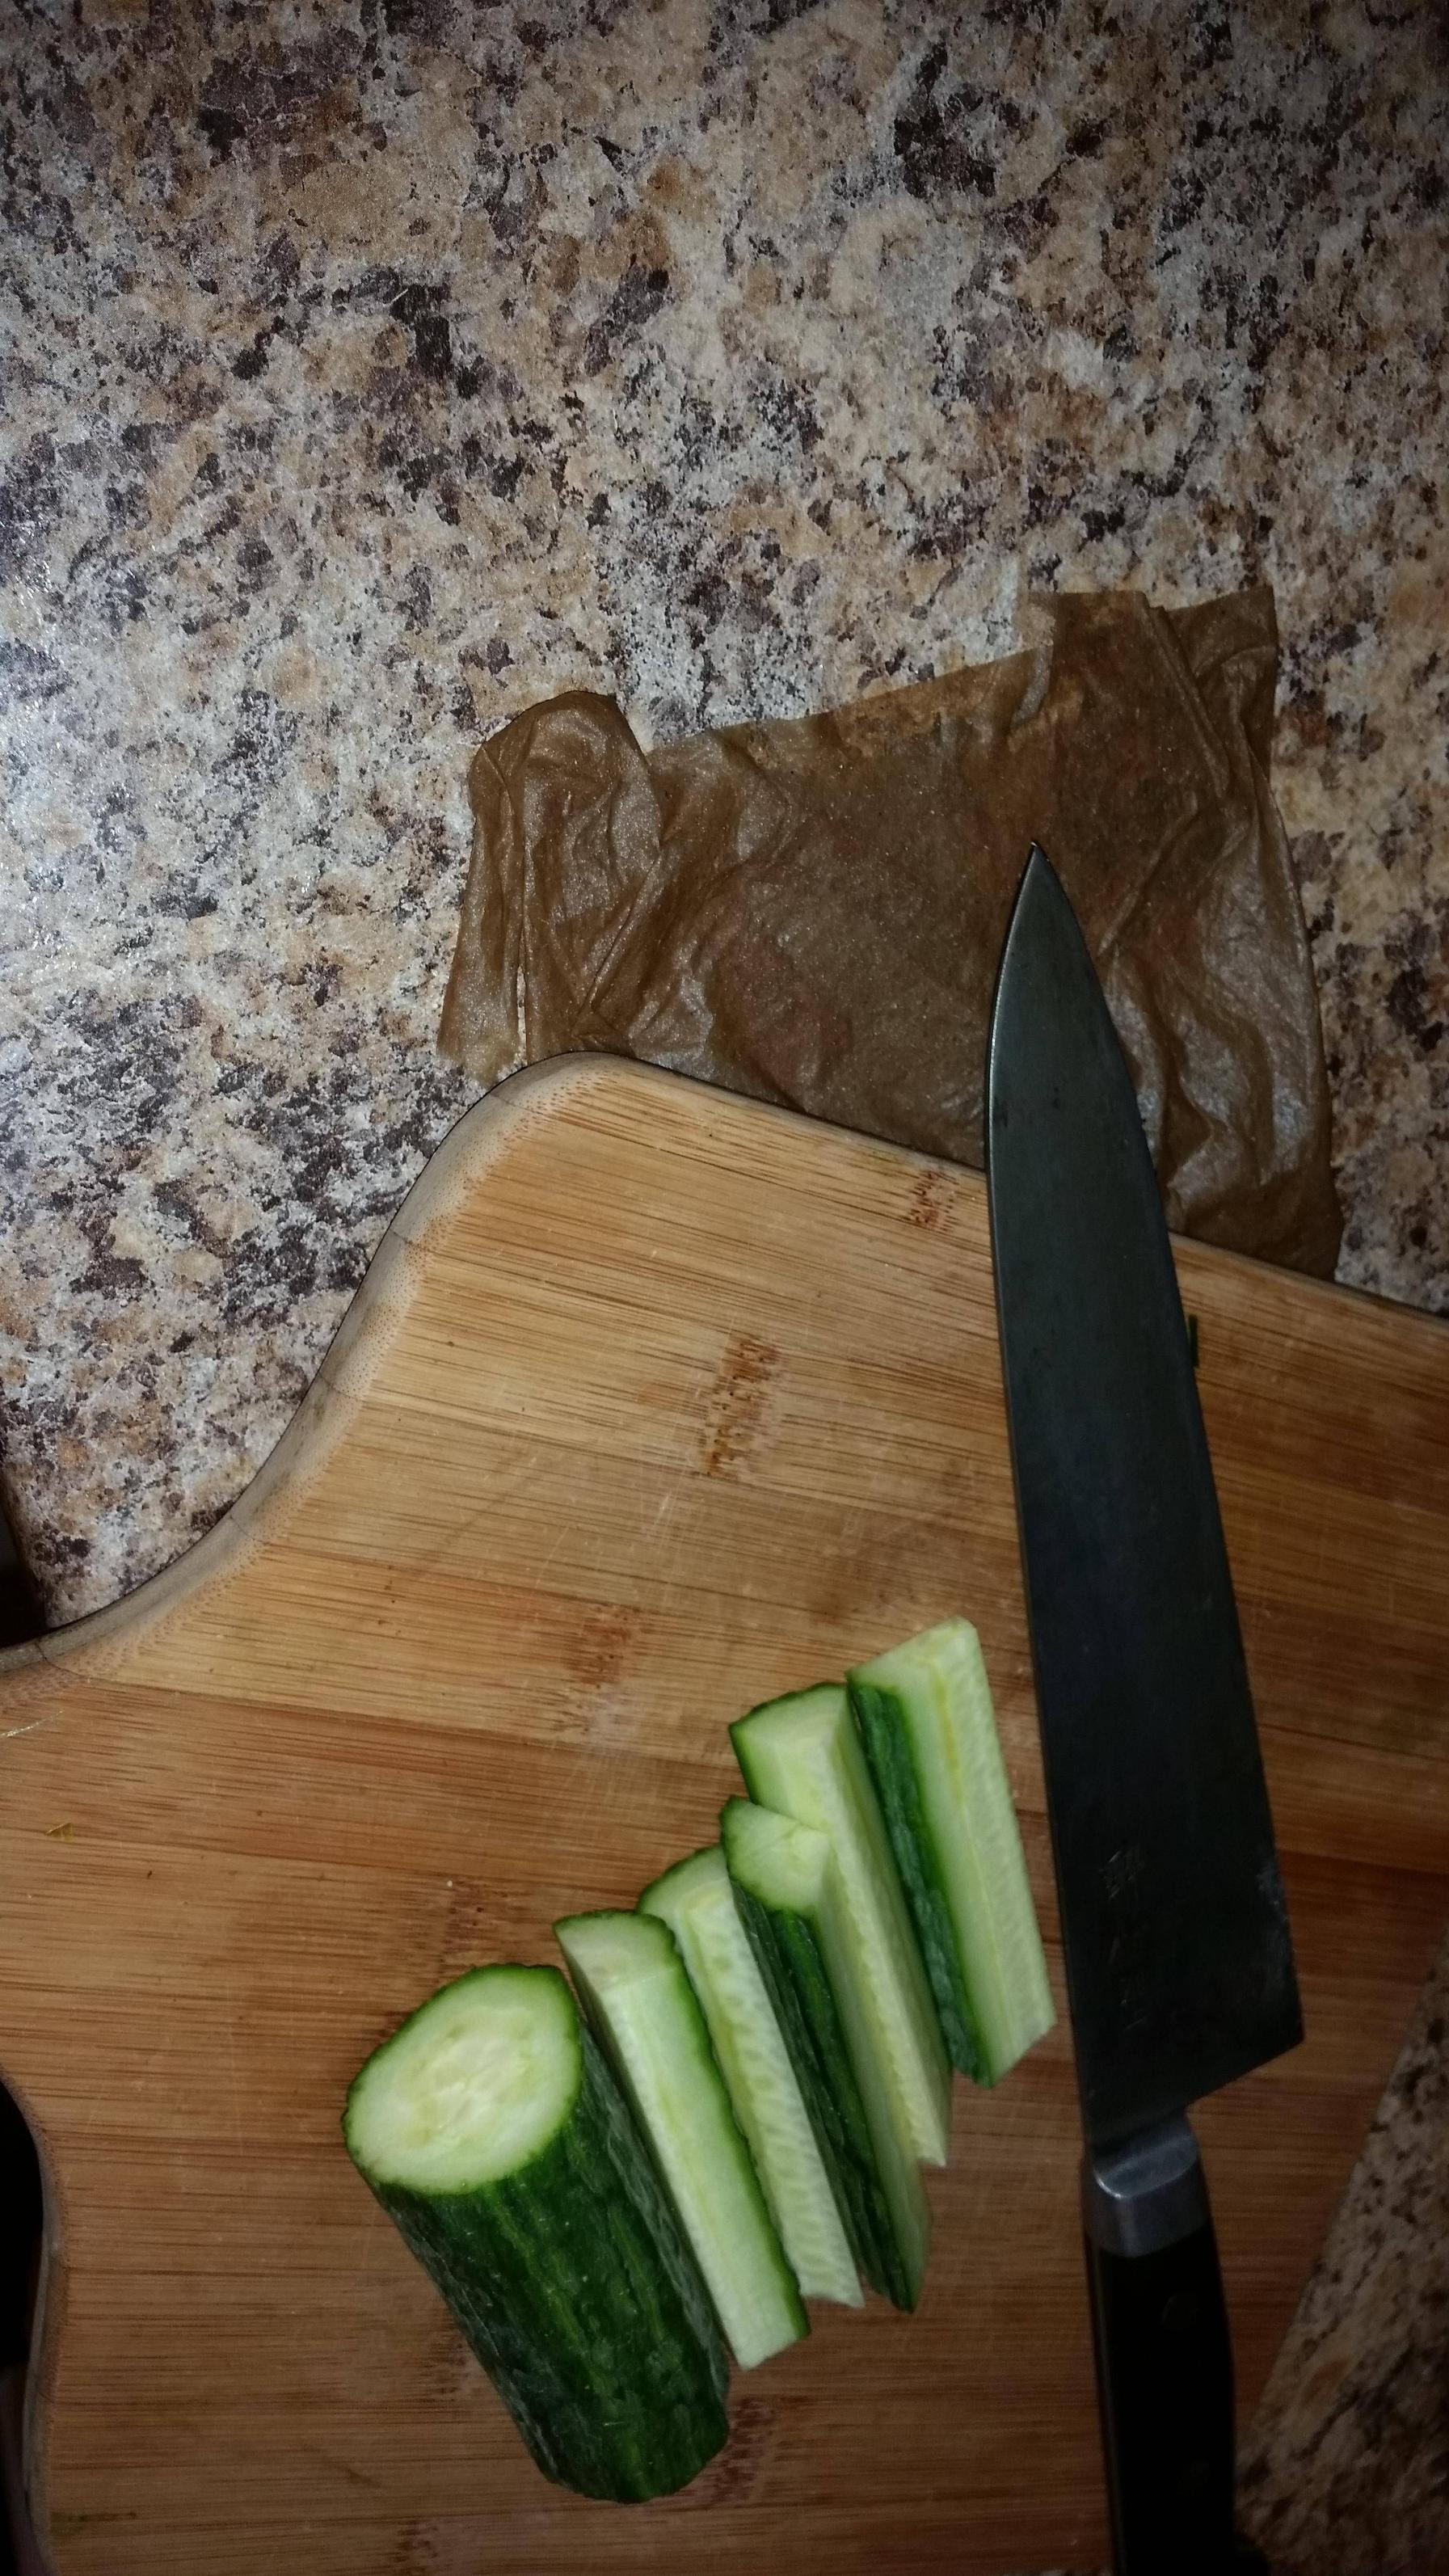 Put A Wet Paper Towel Under Your Cutting Board To Keep It From